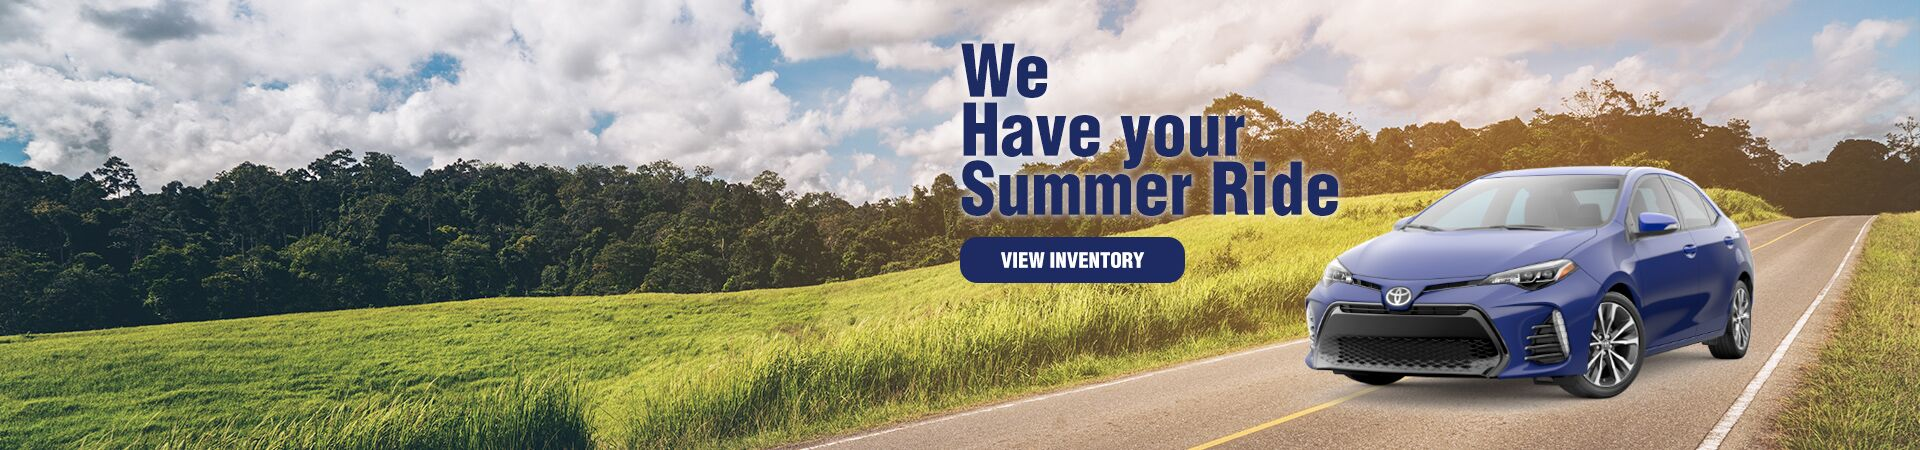 We have your summer ride